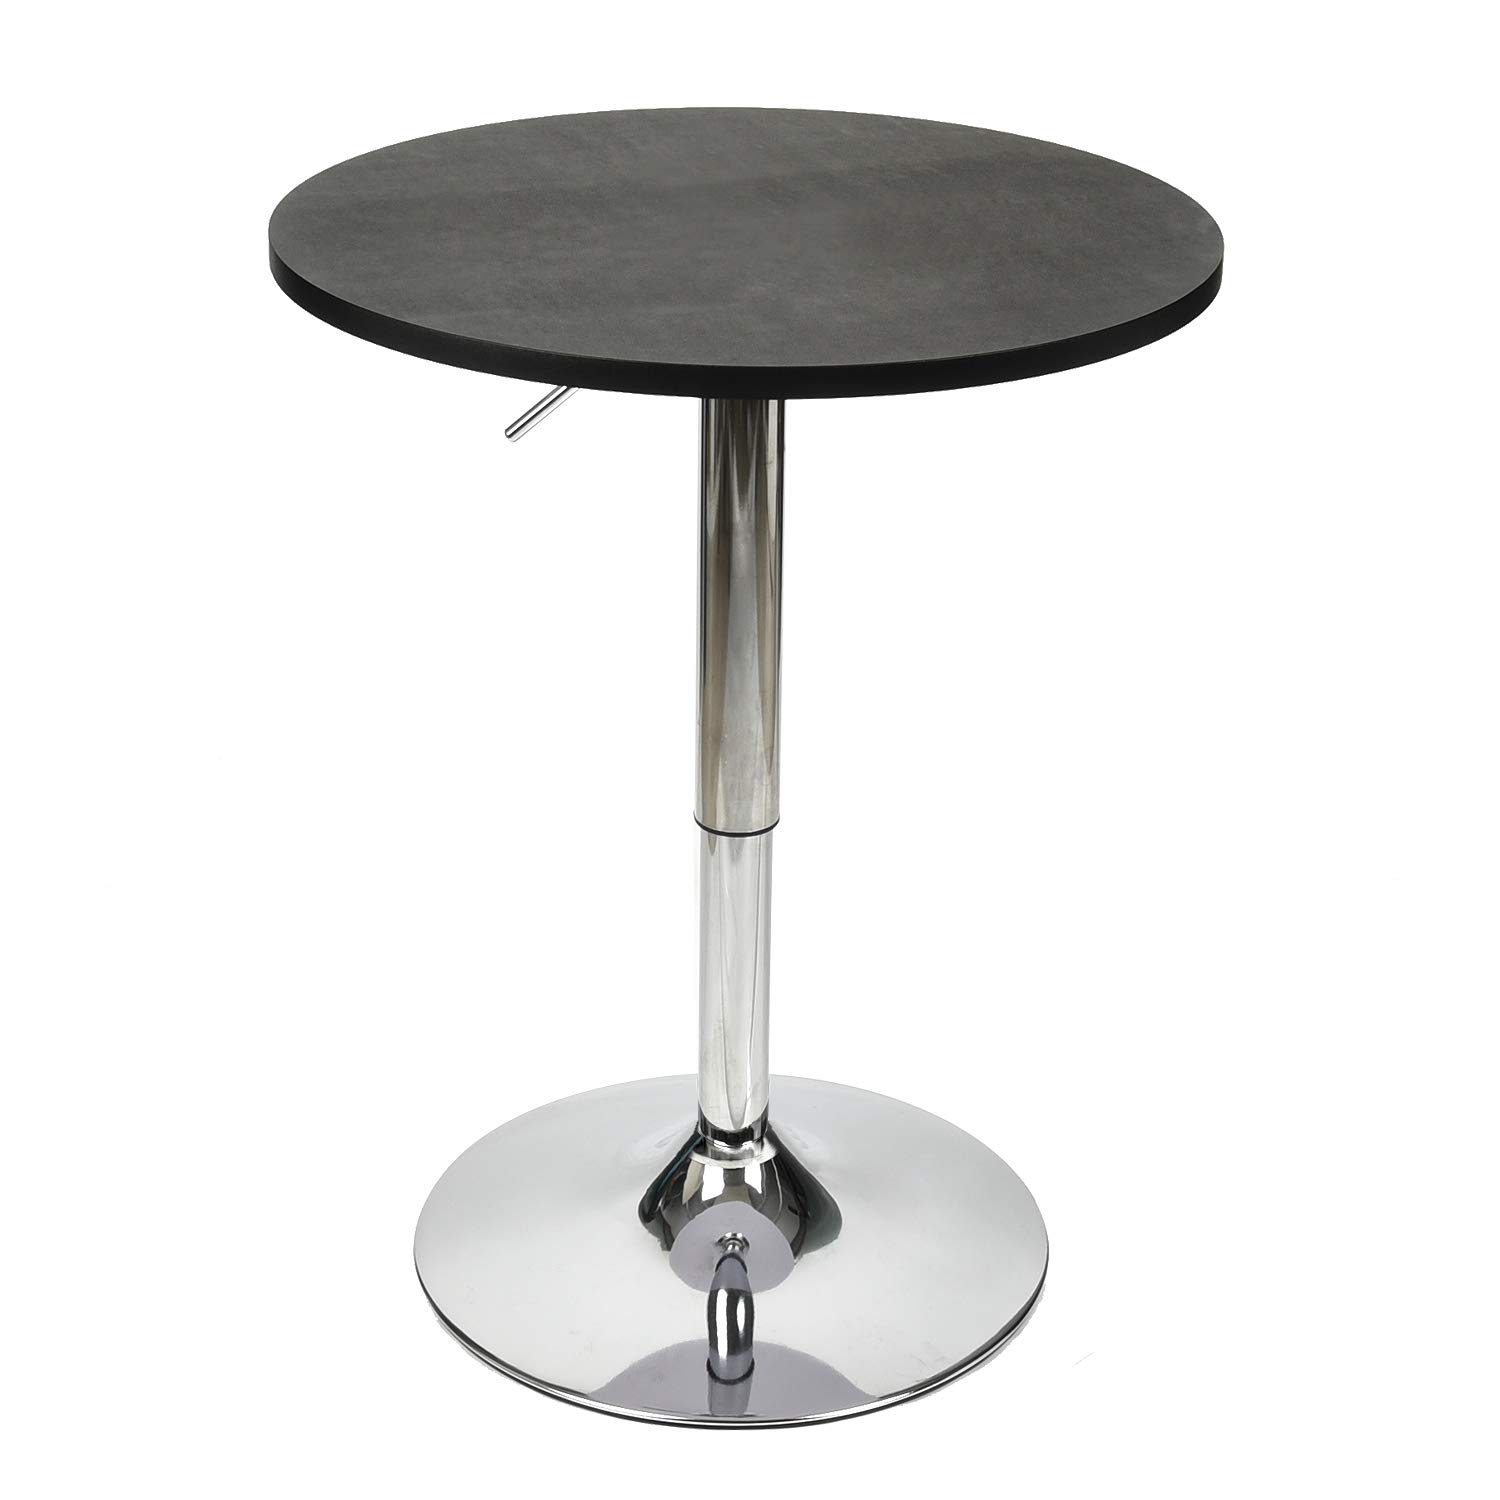 24 Inches Height Round Bar Table Adjustable Height Chrome Metal and Wood Cocktail Pub Table MDF Top 360°Swivel Furniture (Black)